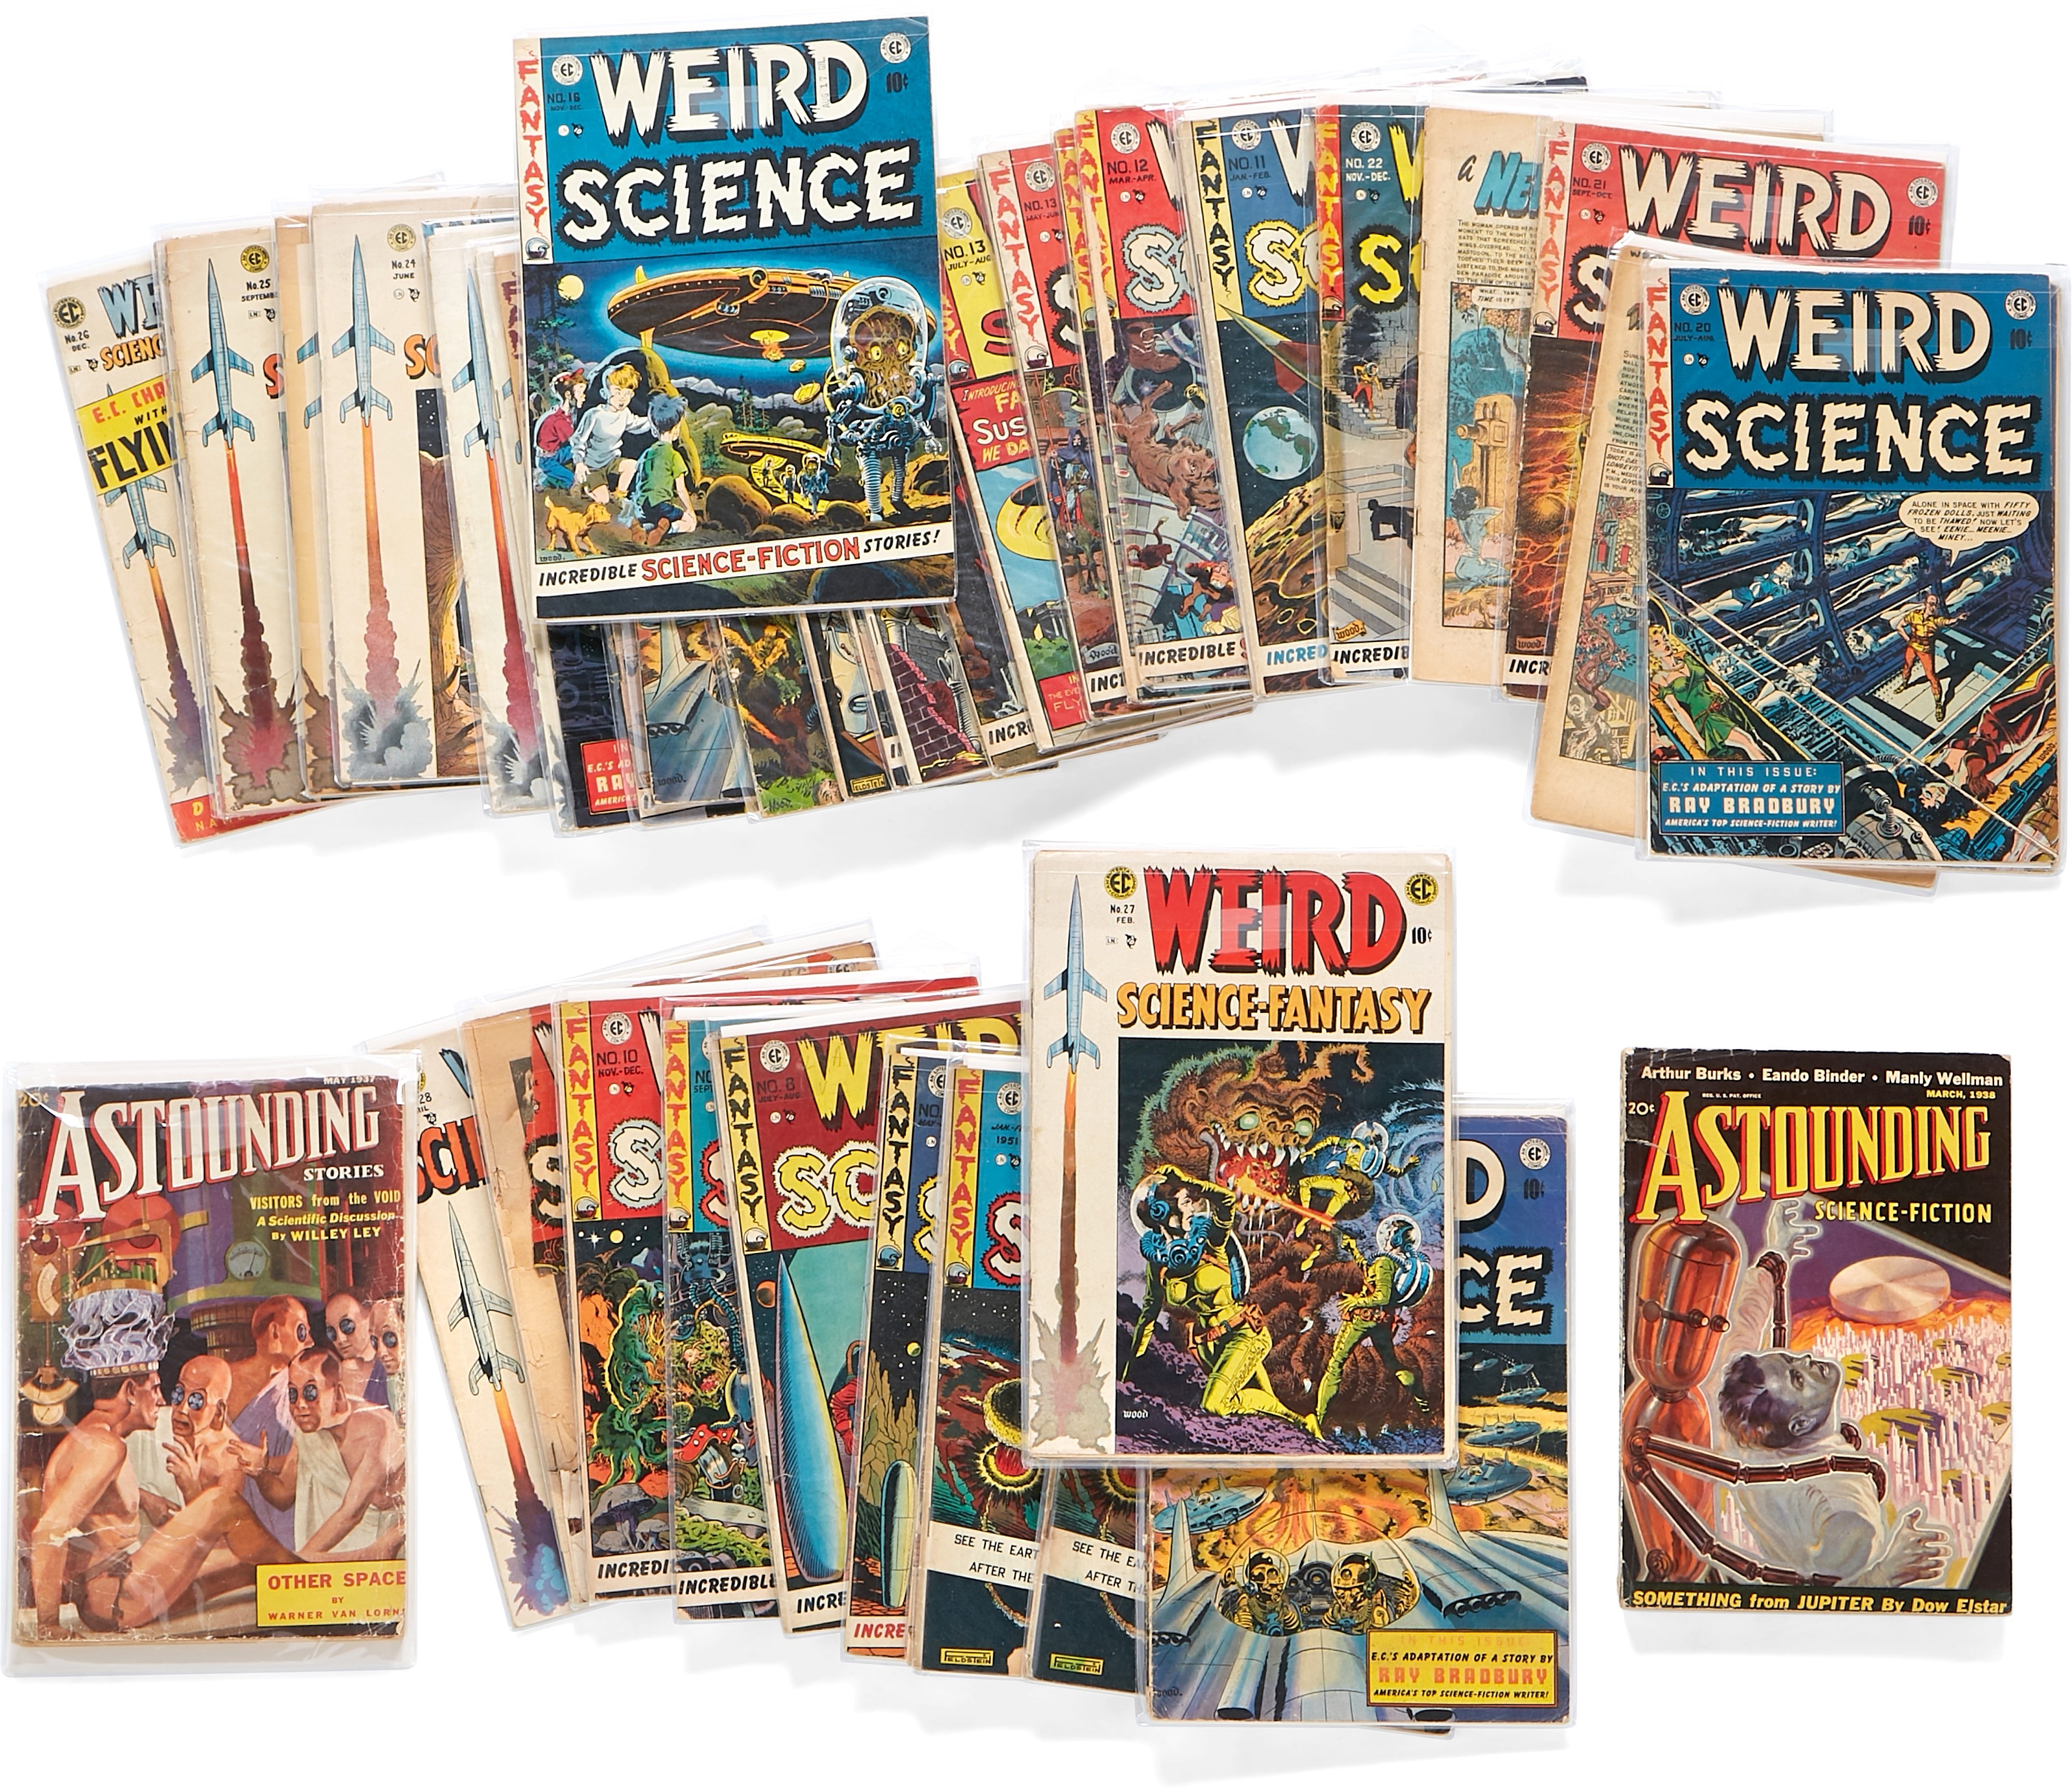 A JERRY GARCIA GROUP OF 41 WEIRD SCIENCE & WEIRD SCIENCE-FANTASY EC COMICS AND 4 ISSUES OF ASTOUN...